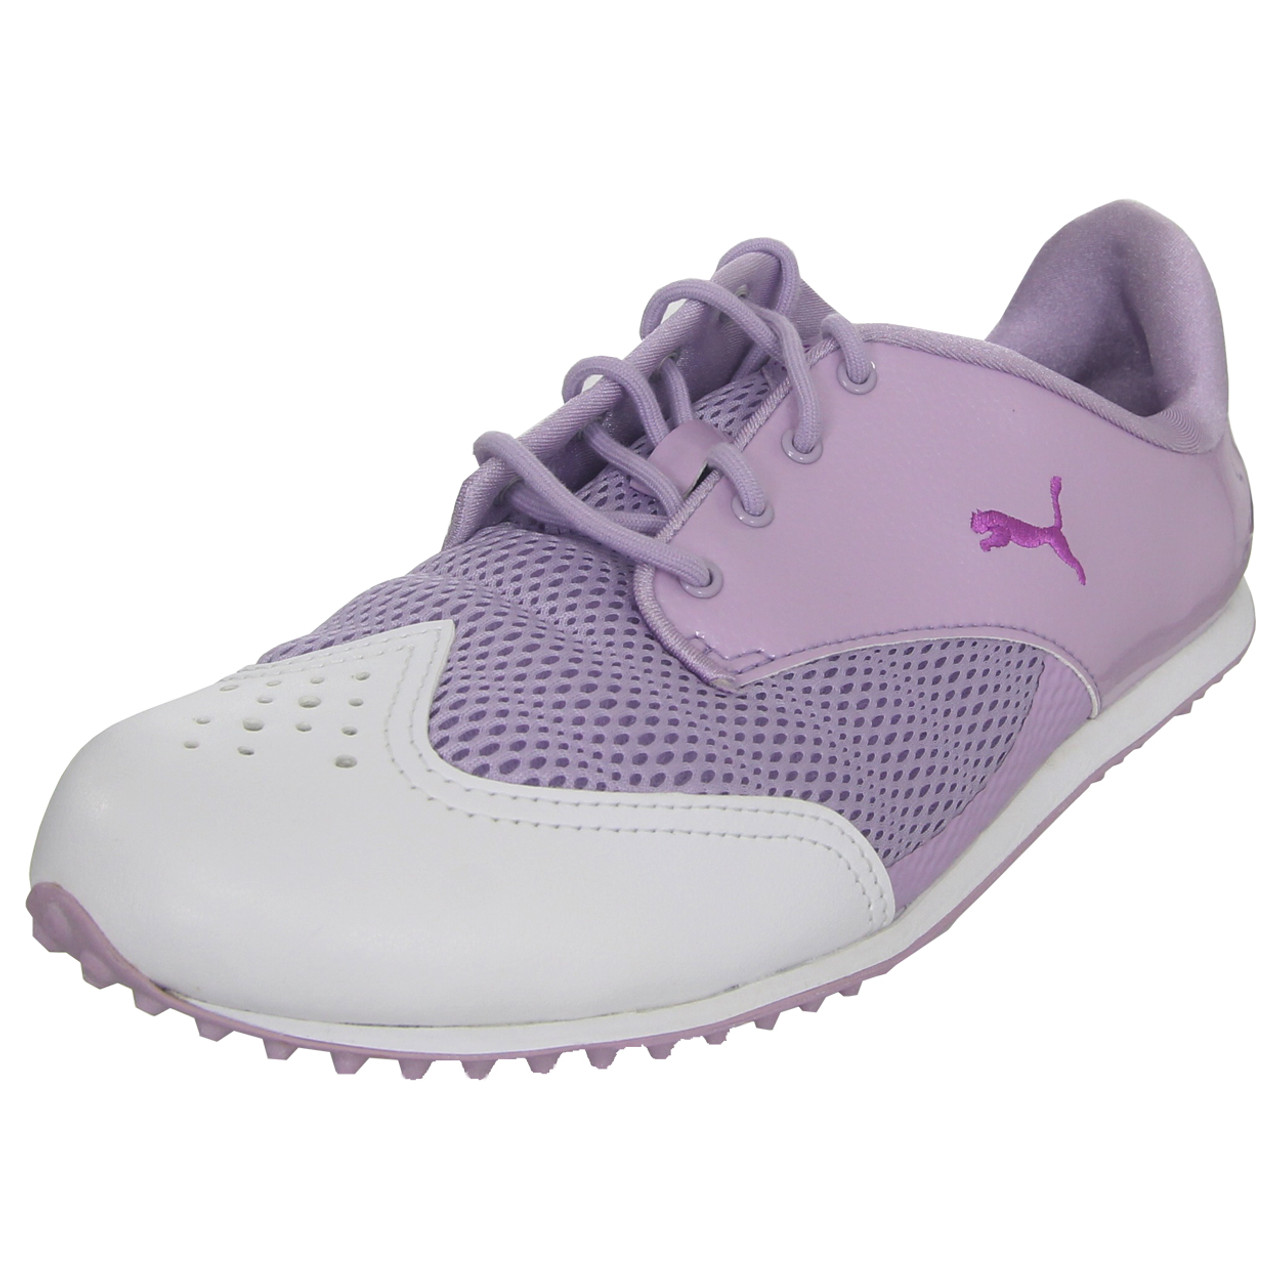 Puma Women S Summercat Golf Shoe Golfetail Com